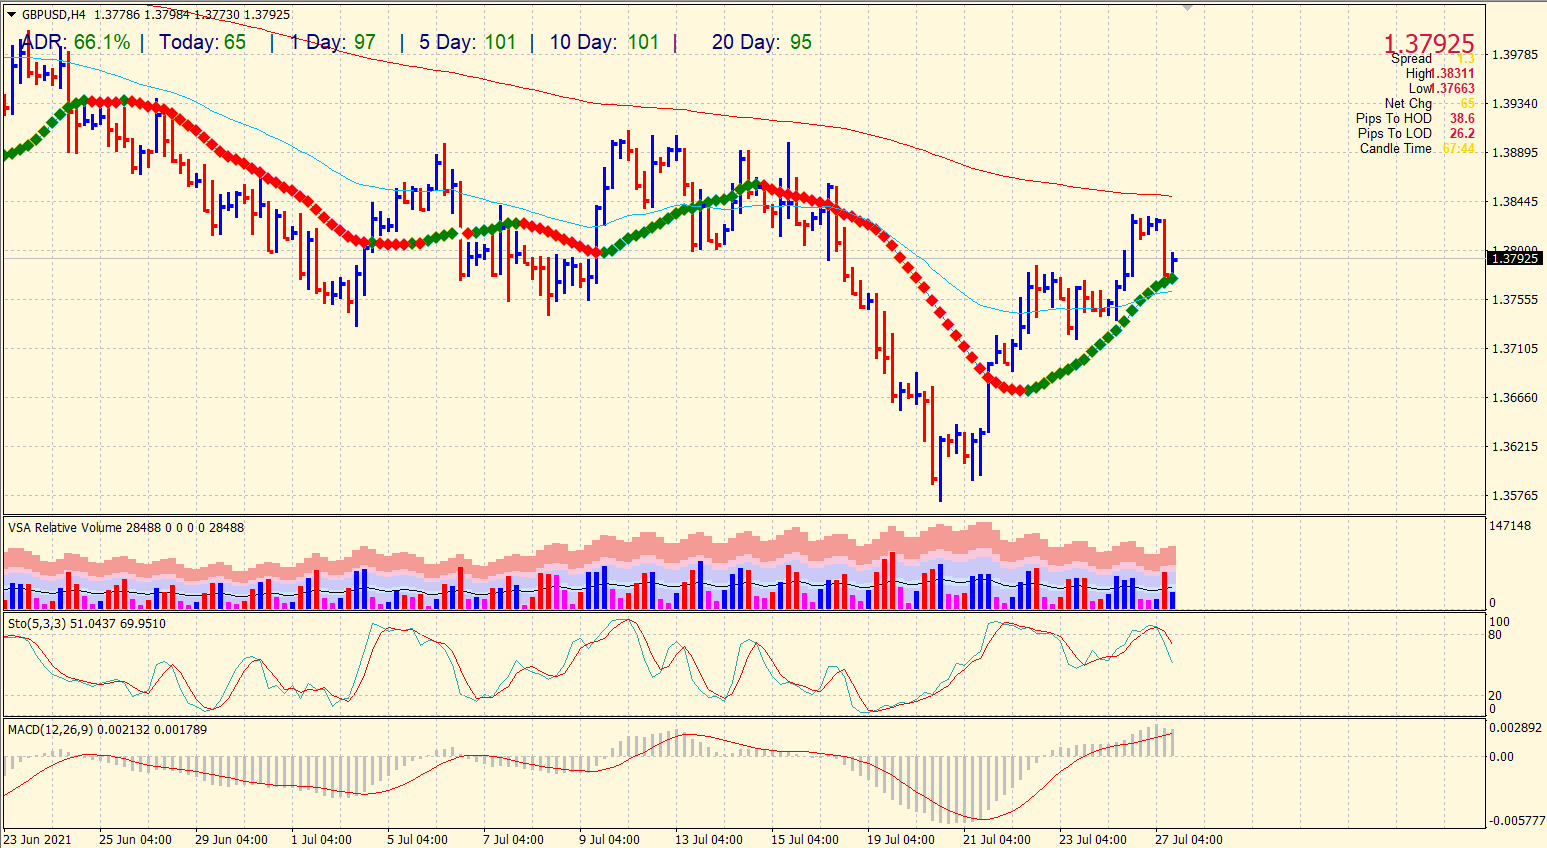 GBP/USD price on 4-hour chart.